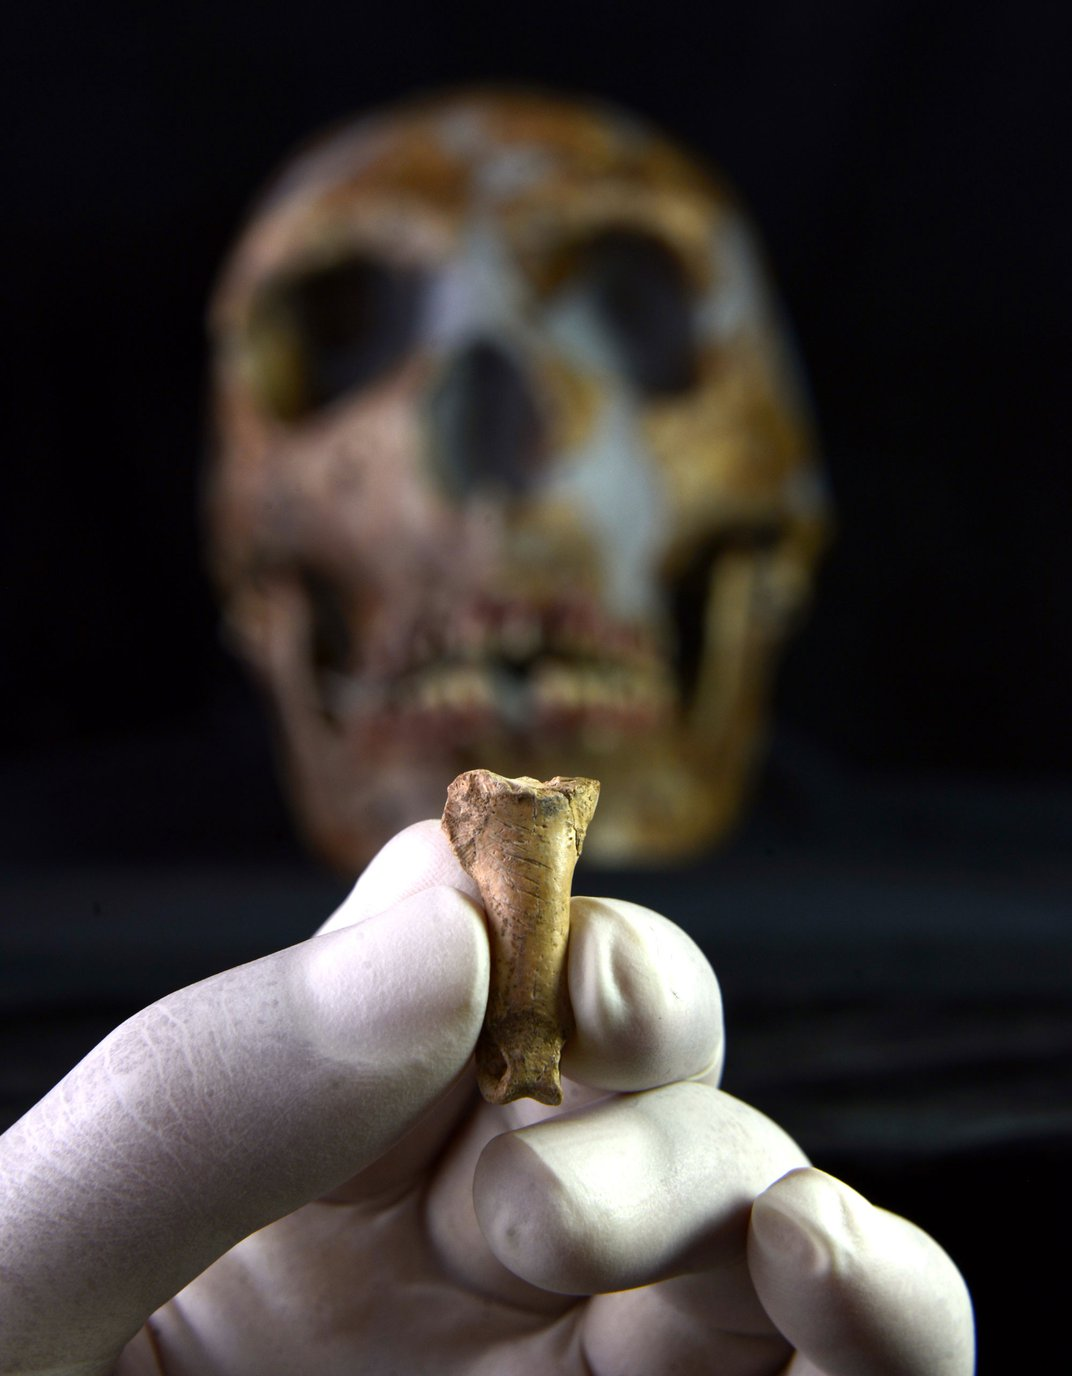 Eagle Talon Jewelry Suggests Neanderthals Were Capable of Human-Like Thought